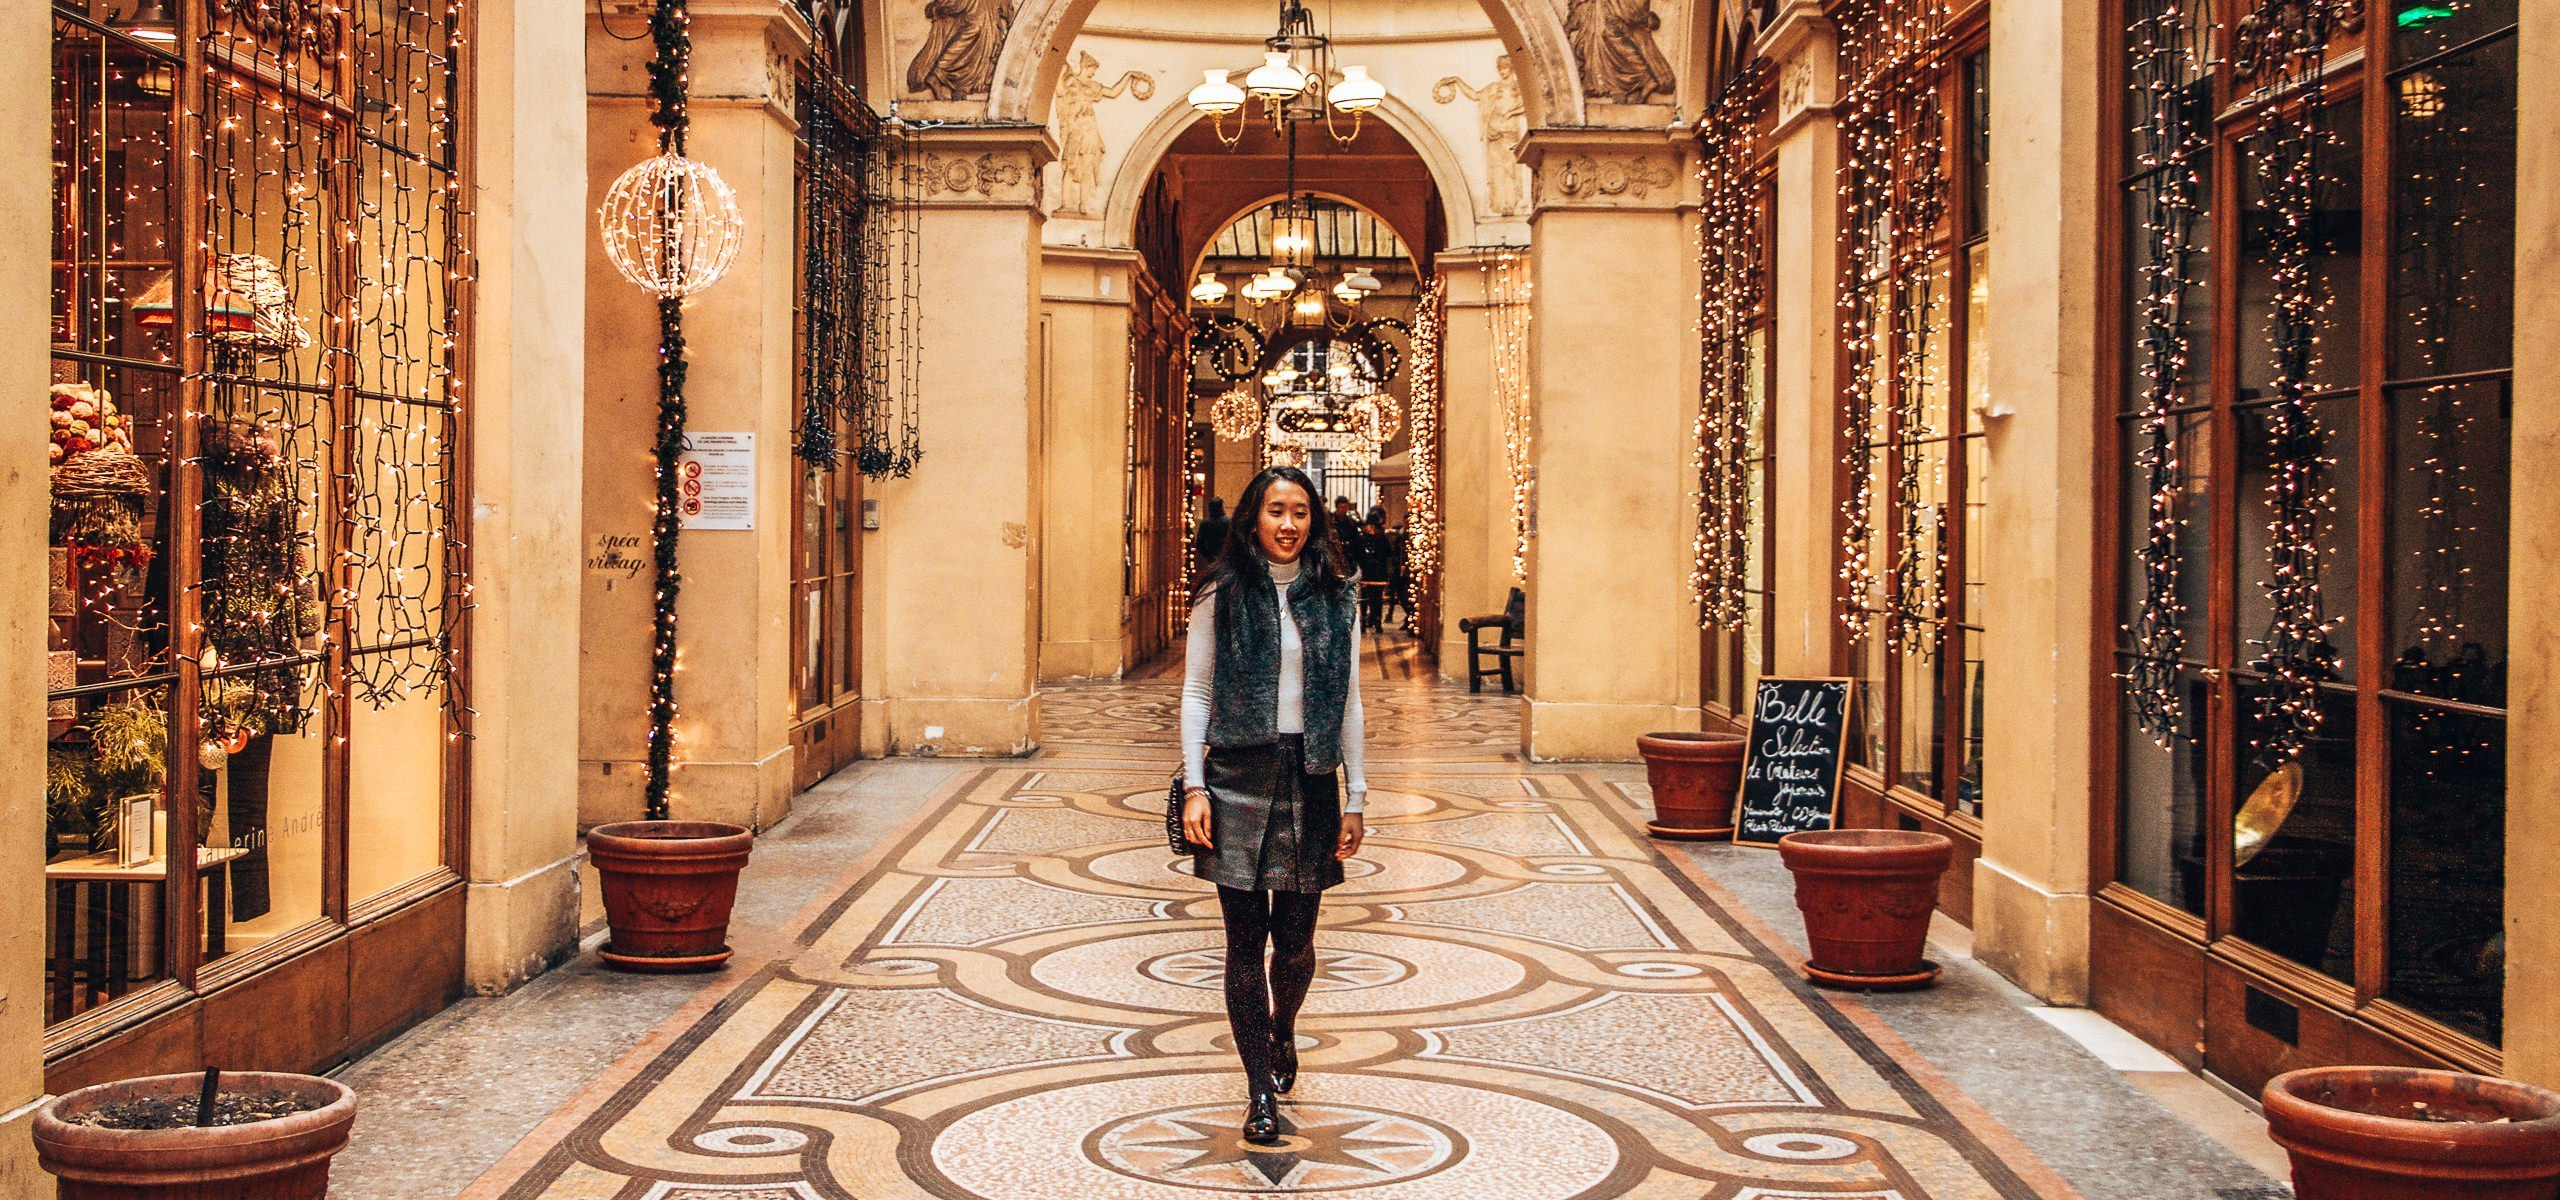 Jasmine walks through a mosaic corrider in Galerie Vivienne under fairylights, Paris